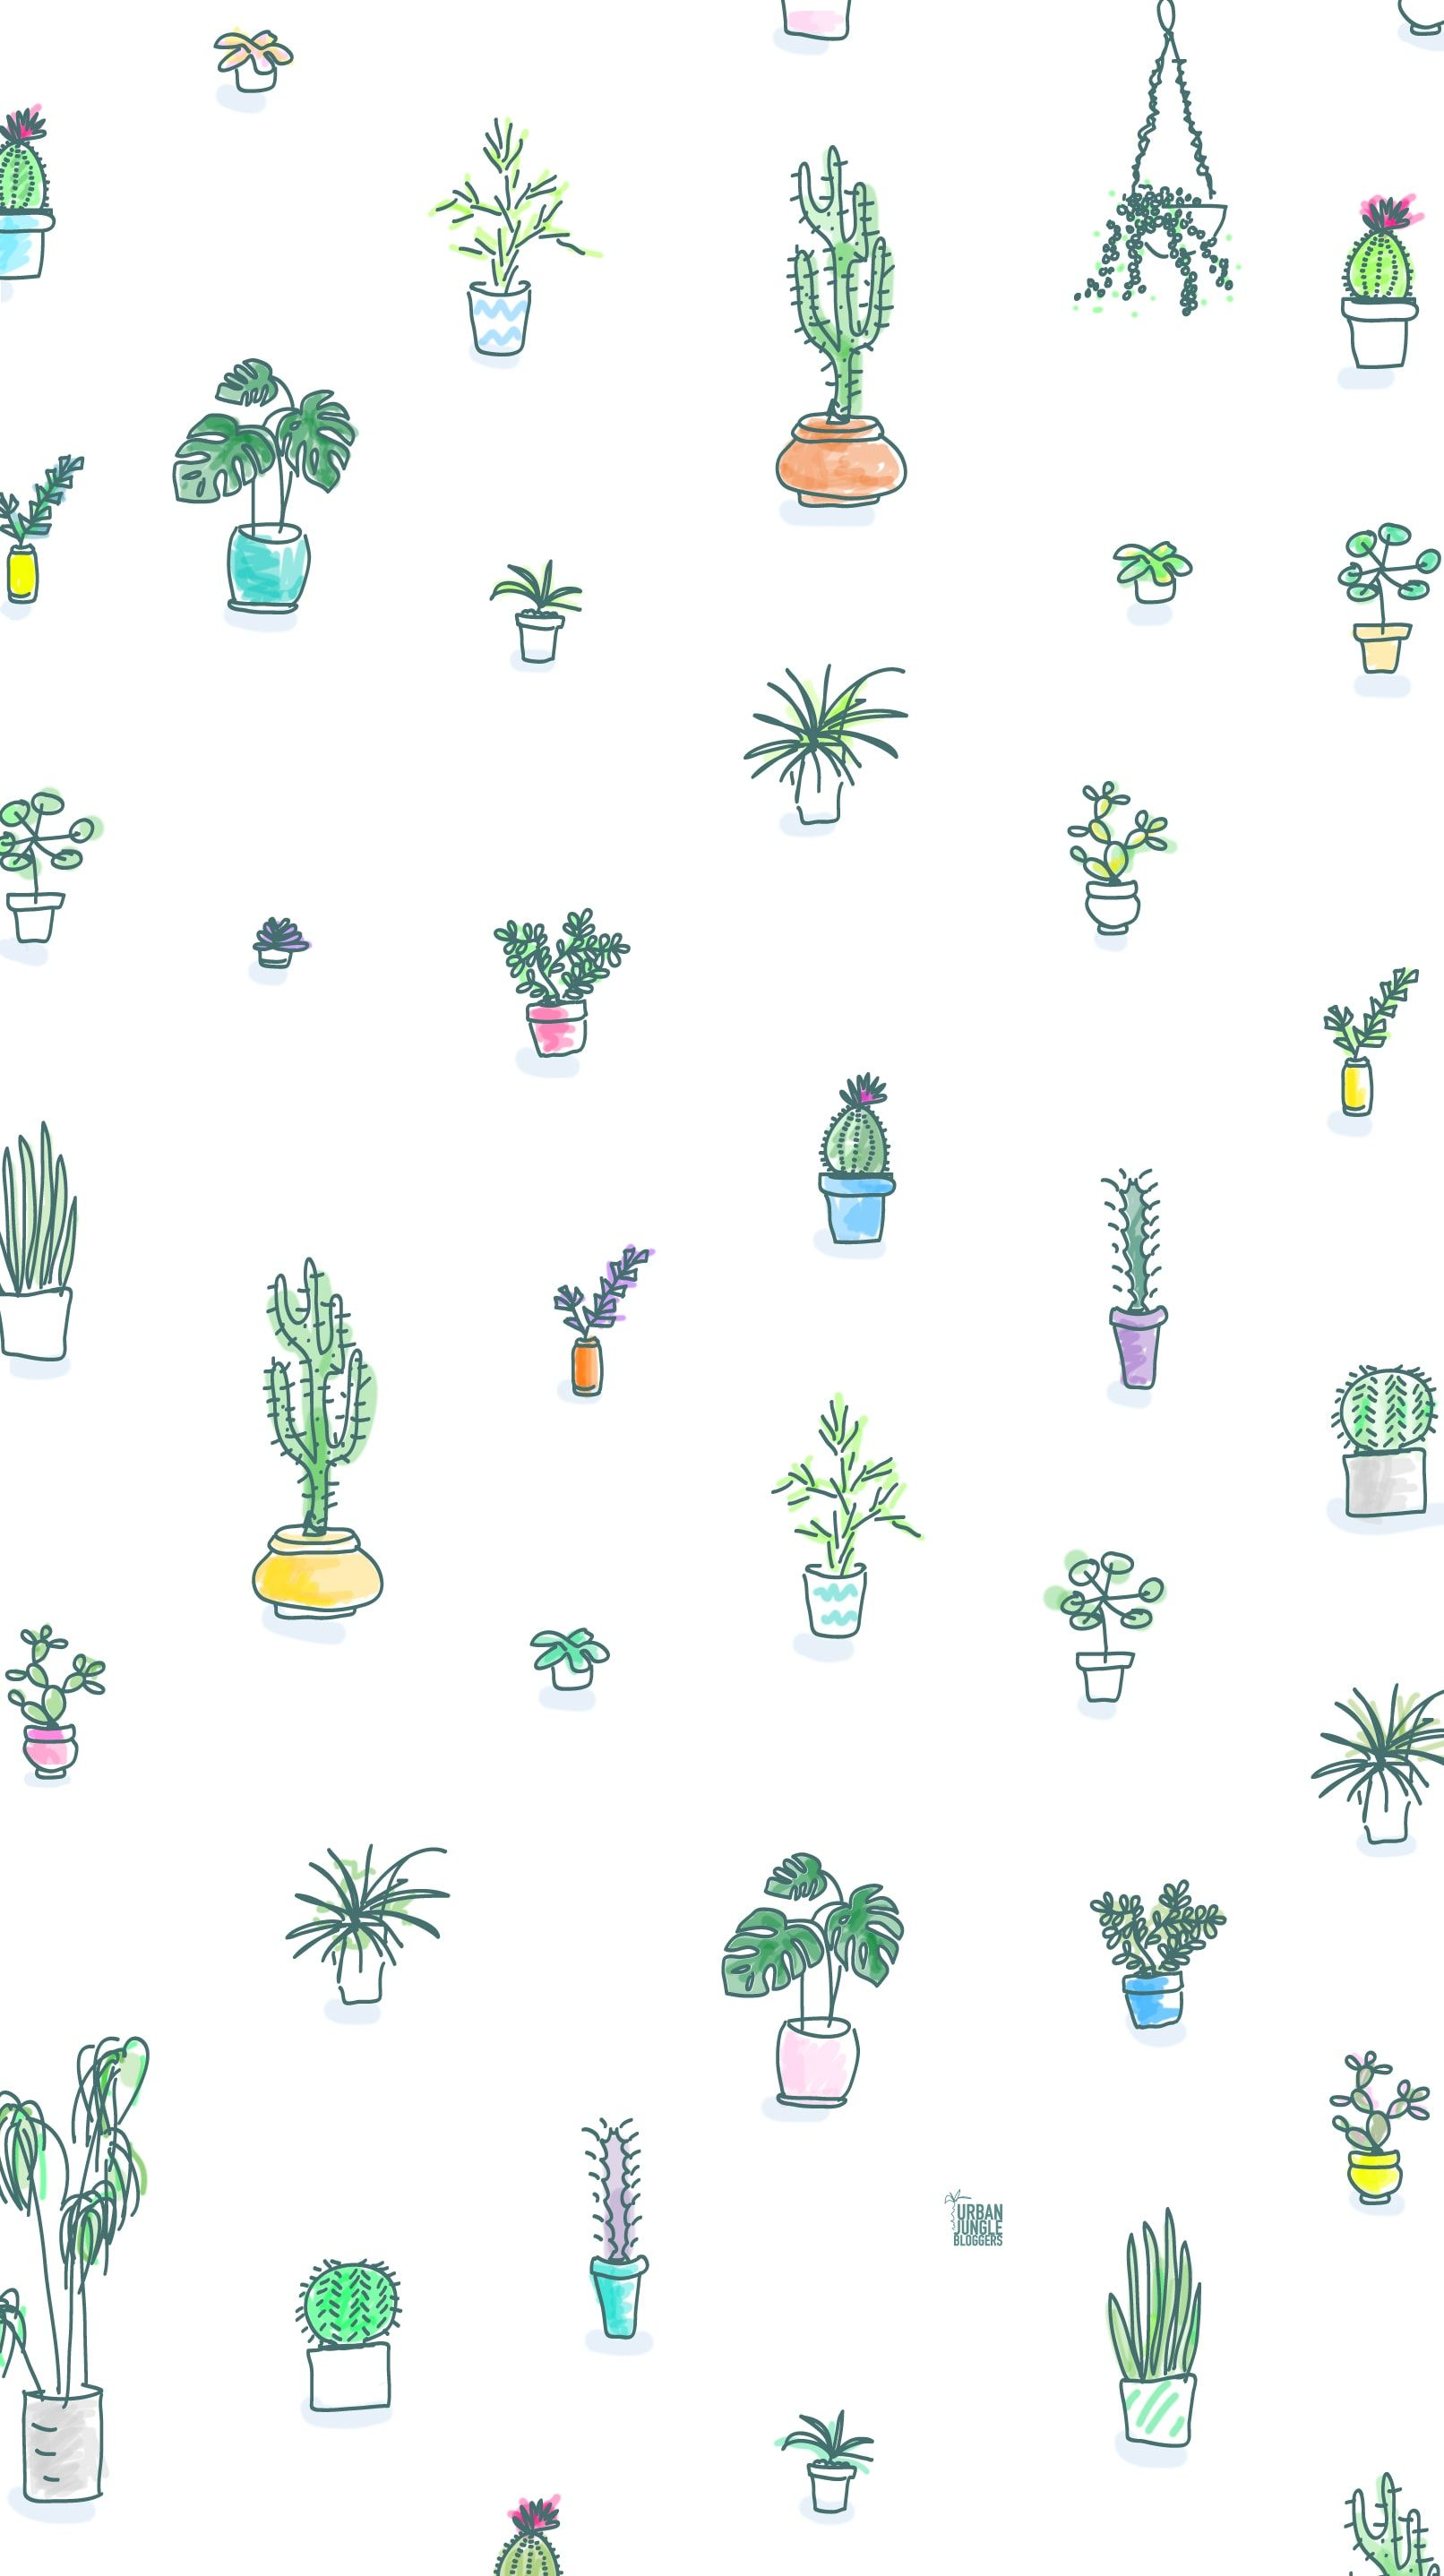 2019 Cute Wallpaper Girly Wallpaper Free Pretty Iphone Backgrounds Cute Summer Wallpapers Pretty Wallpaper Iphone Succulents Wallpaper